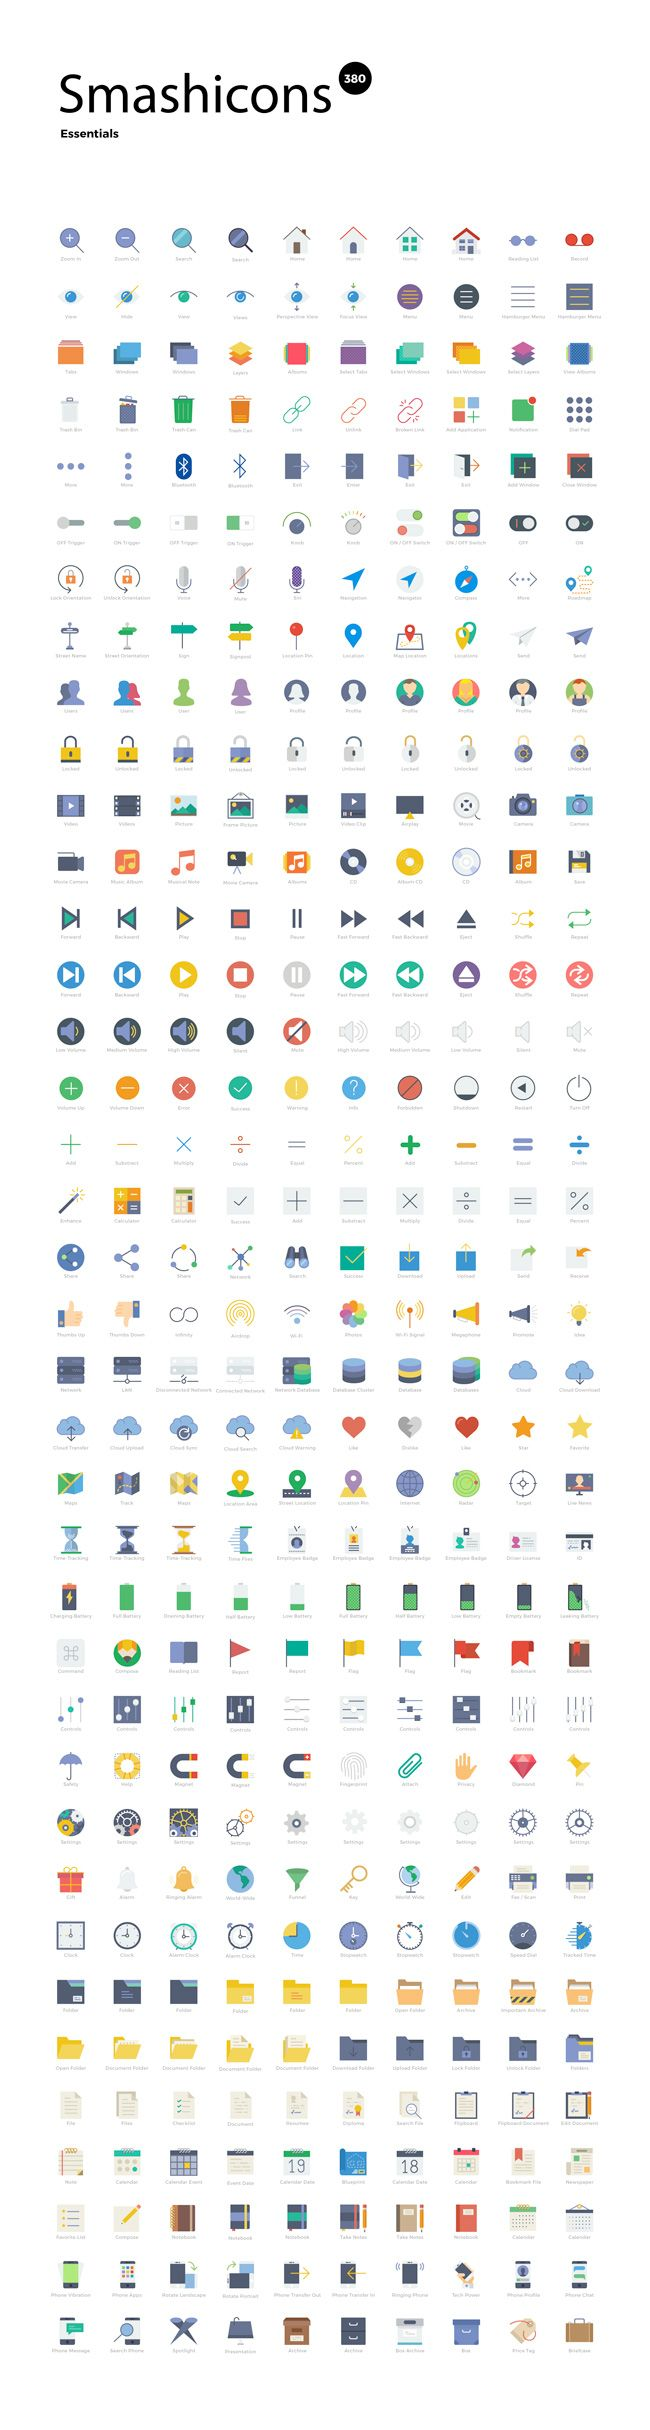 380 Free Flat Style Icons From Smashicons (exclusive)